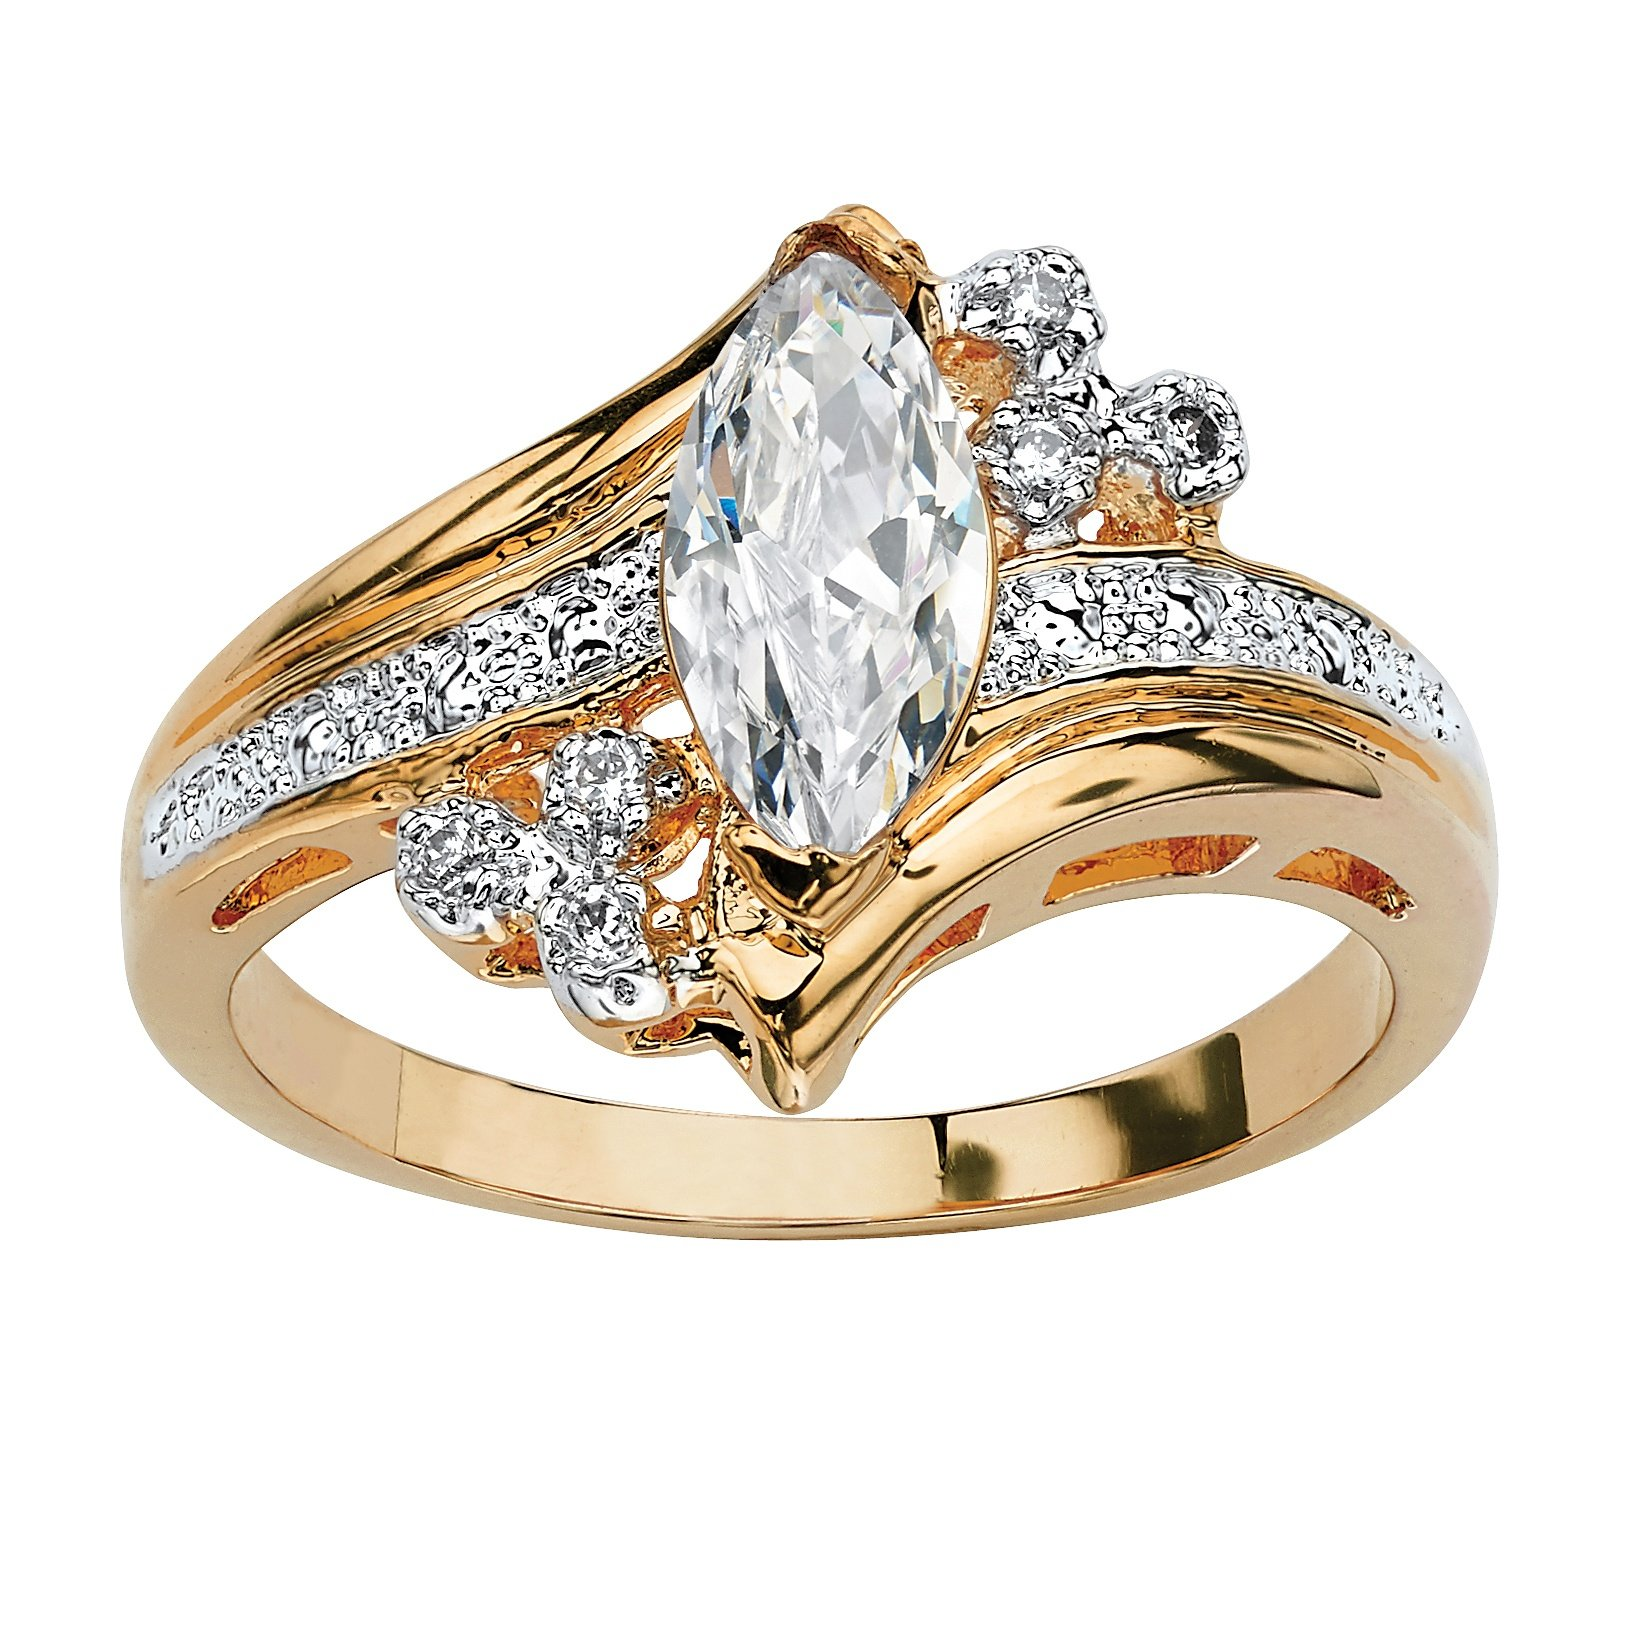 Palm Beach Jewelry 14K Yellow Gold-Plated Marquise Cut Cubic Zirconia Engagement Anniversary Ring Size 8 by Palm Beach Jewelry